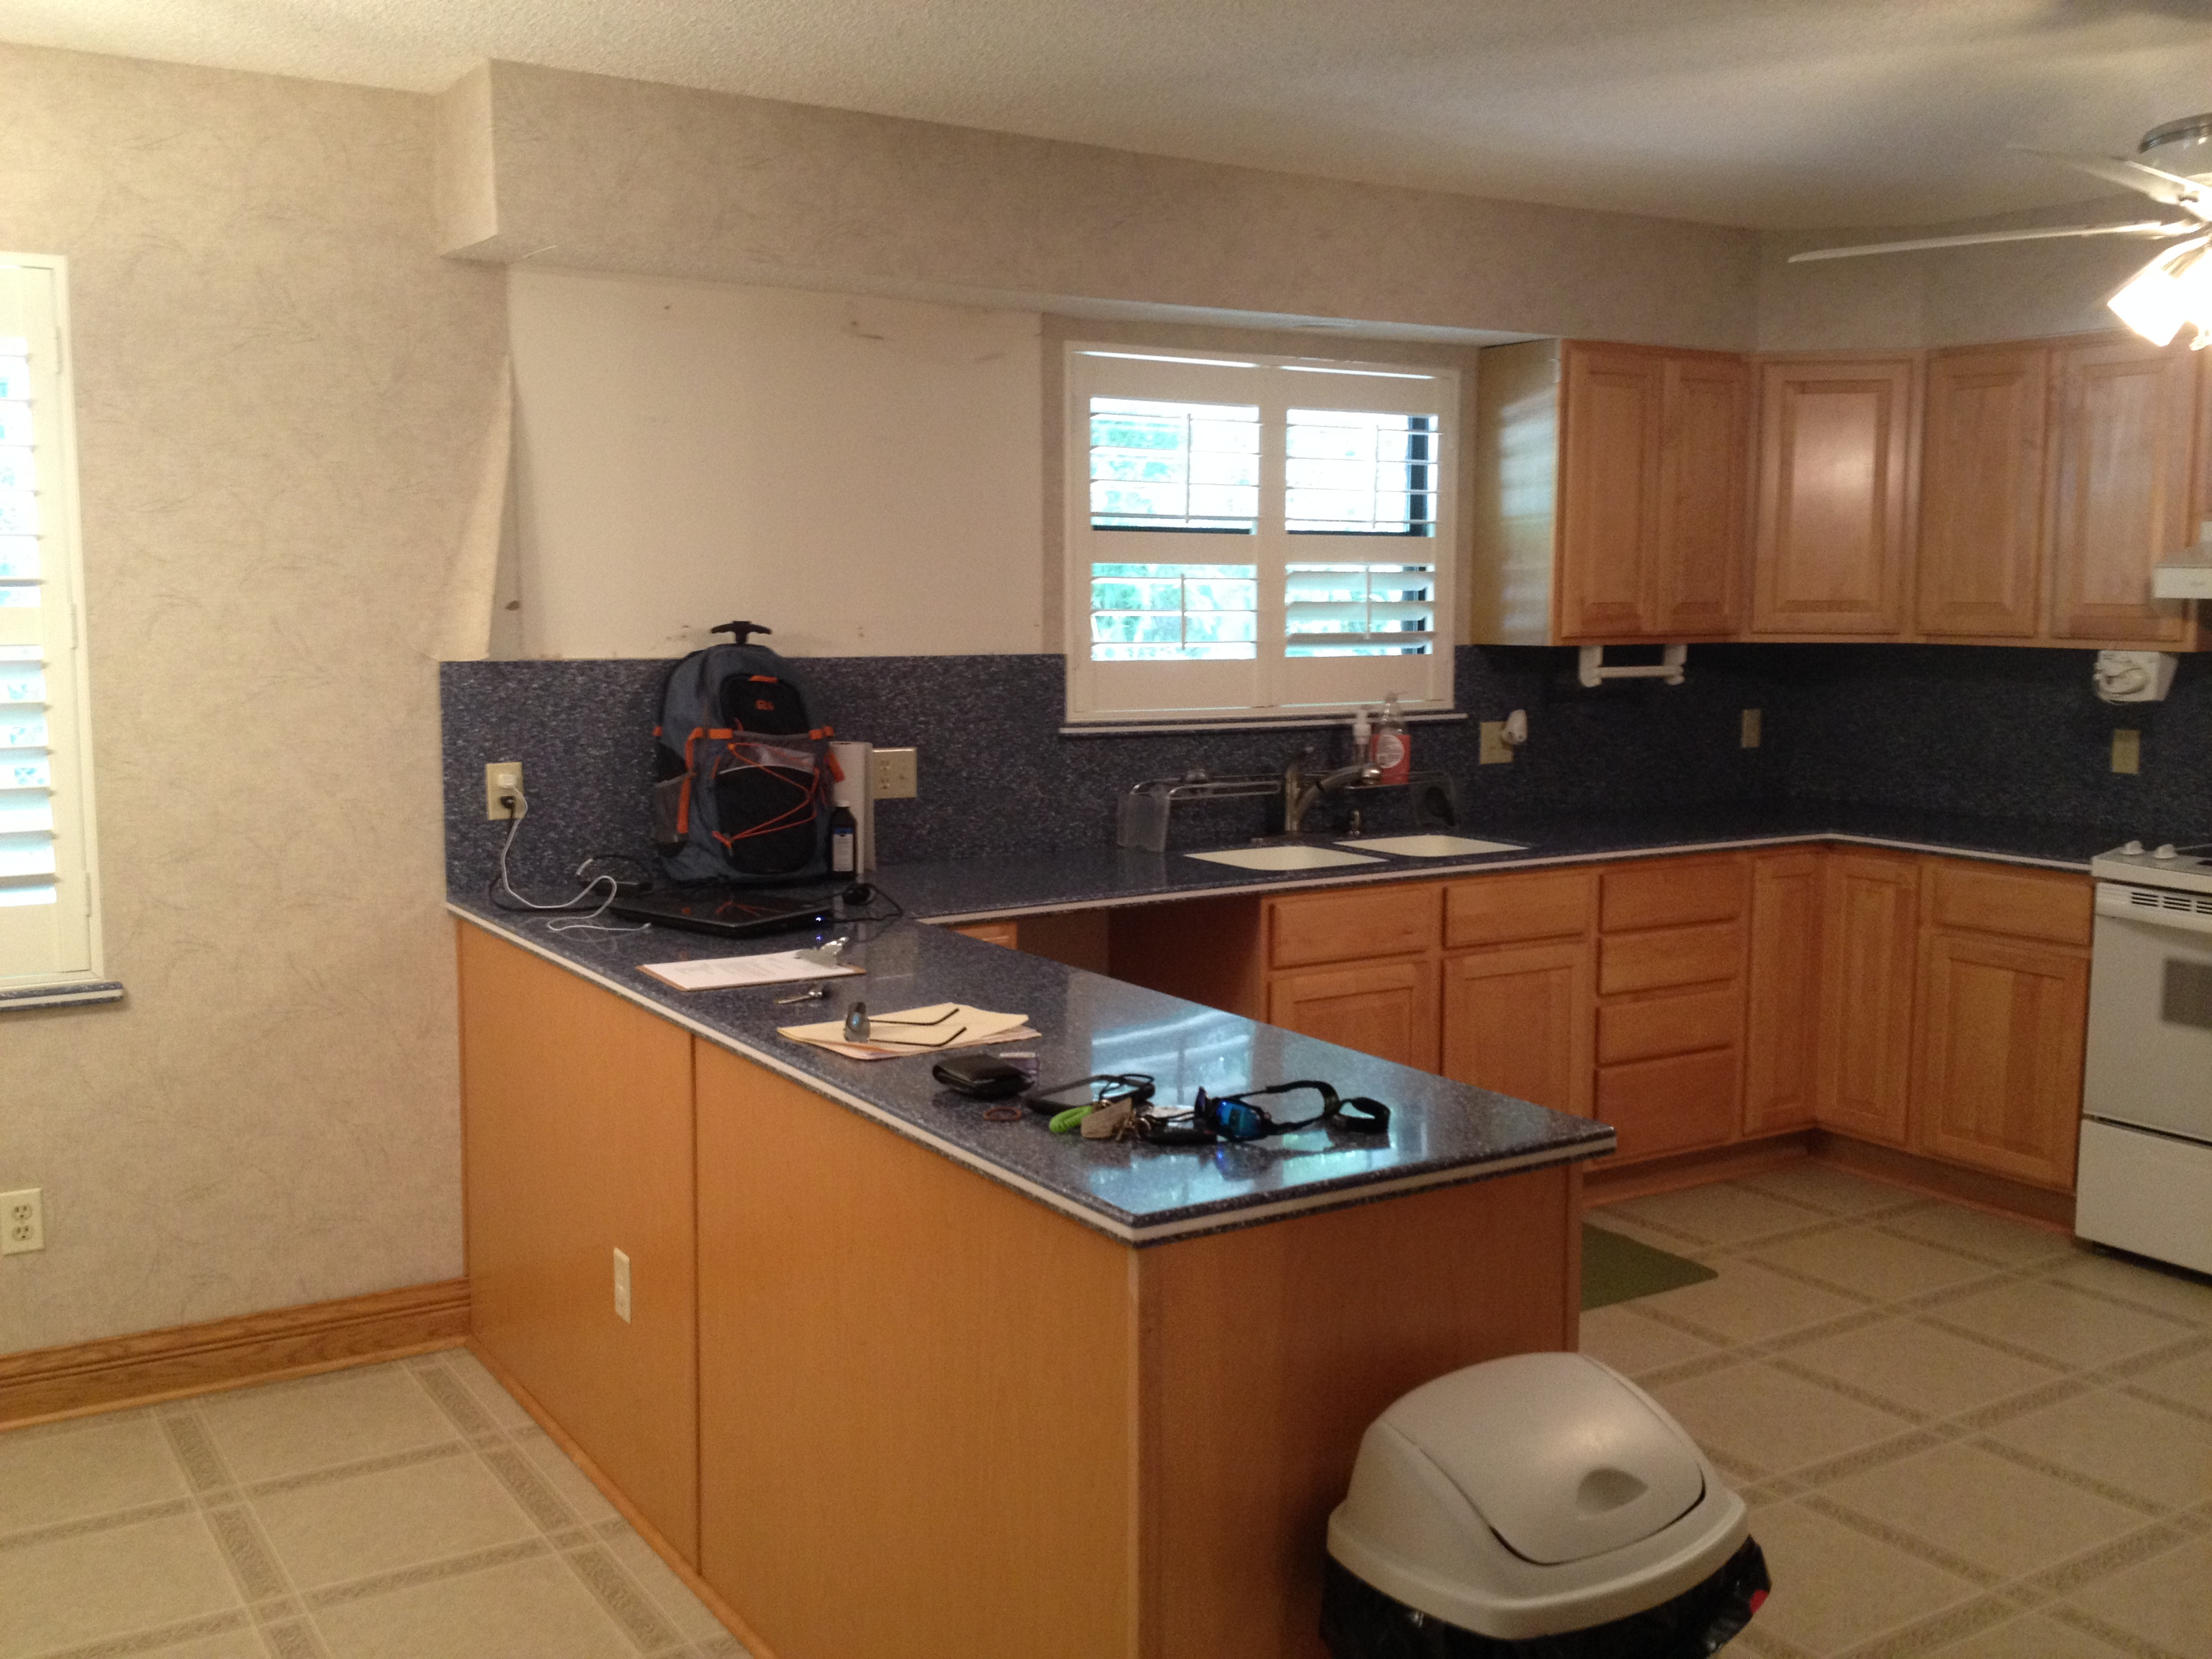 Dreambuilder 23 A 1980s Kitchen Renovation Is Complete